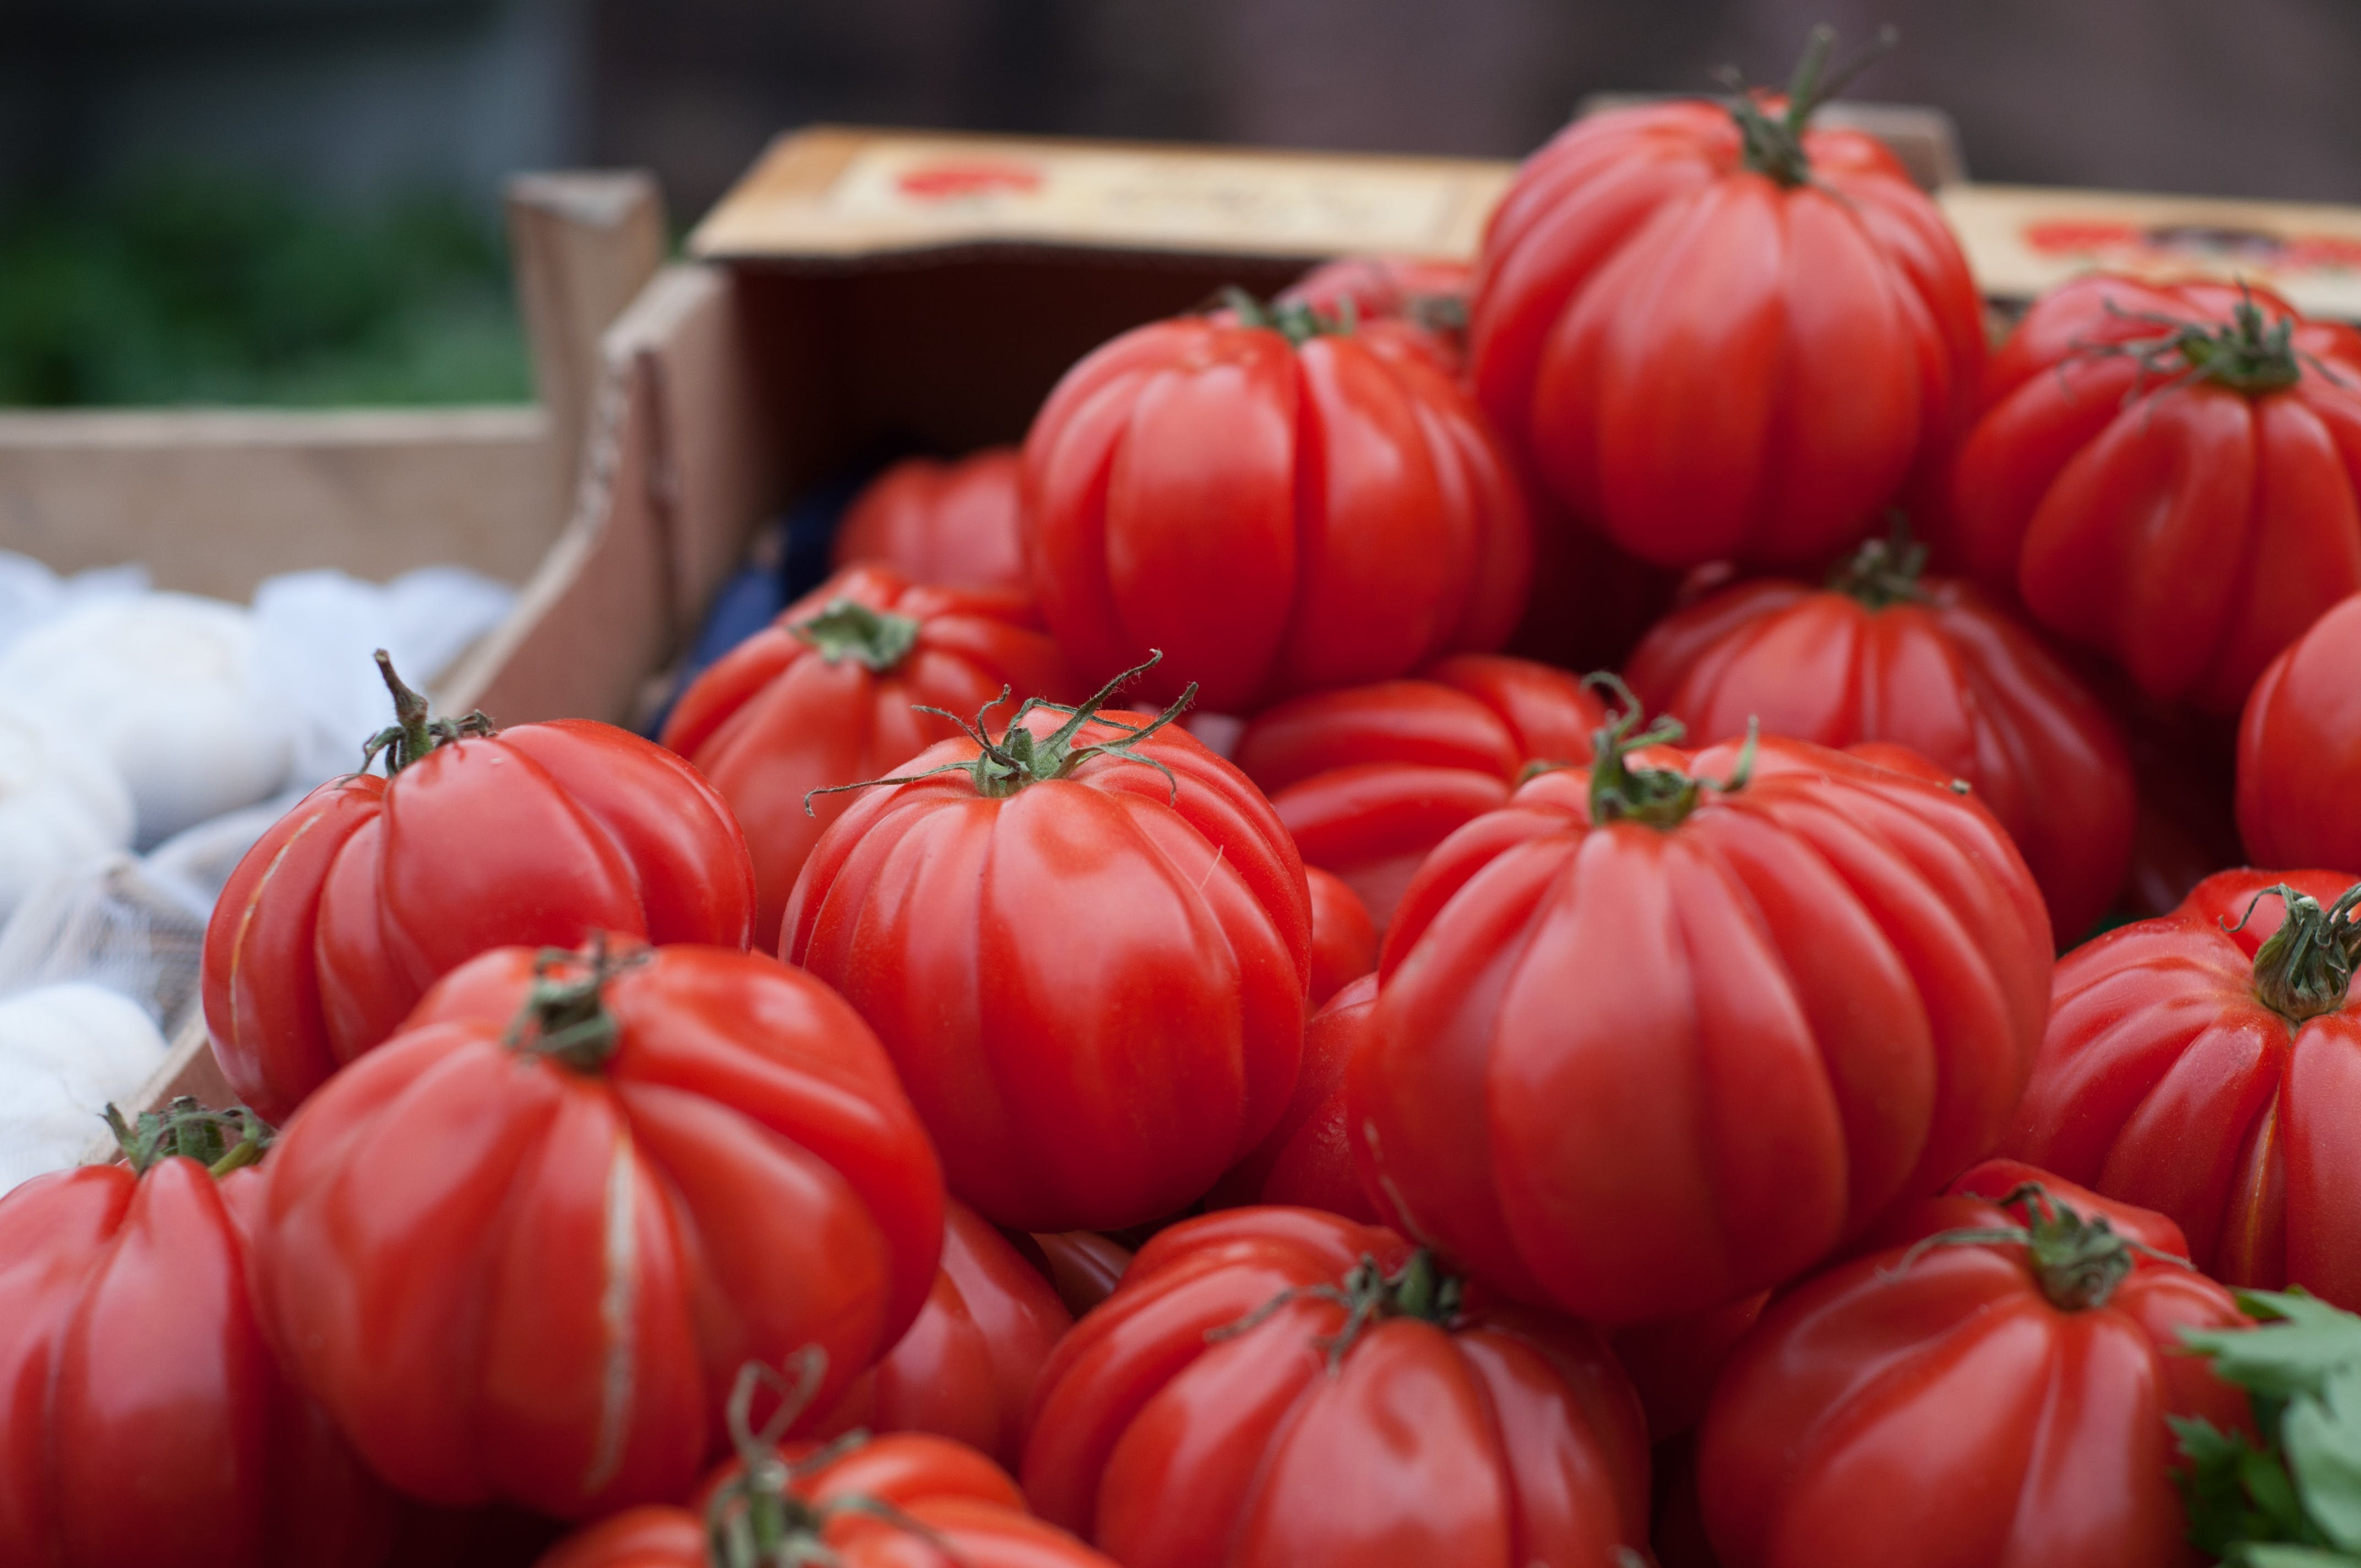 Bunch of Red Tomatoes